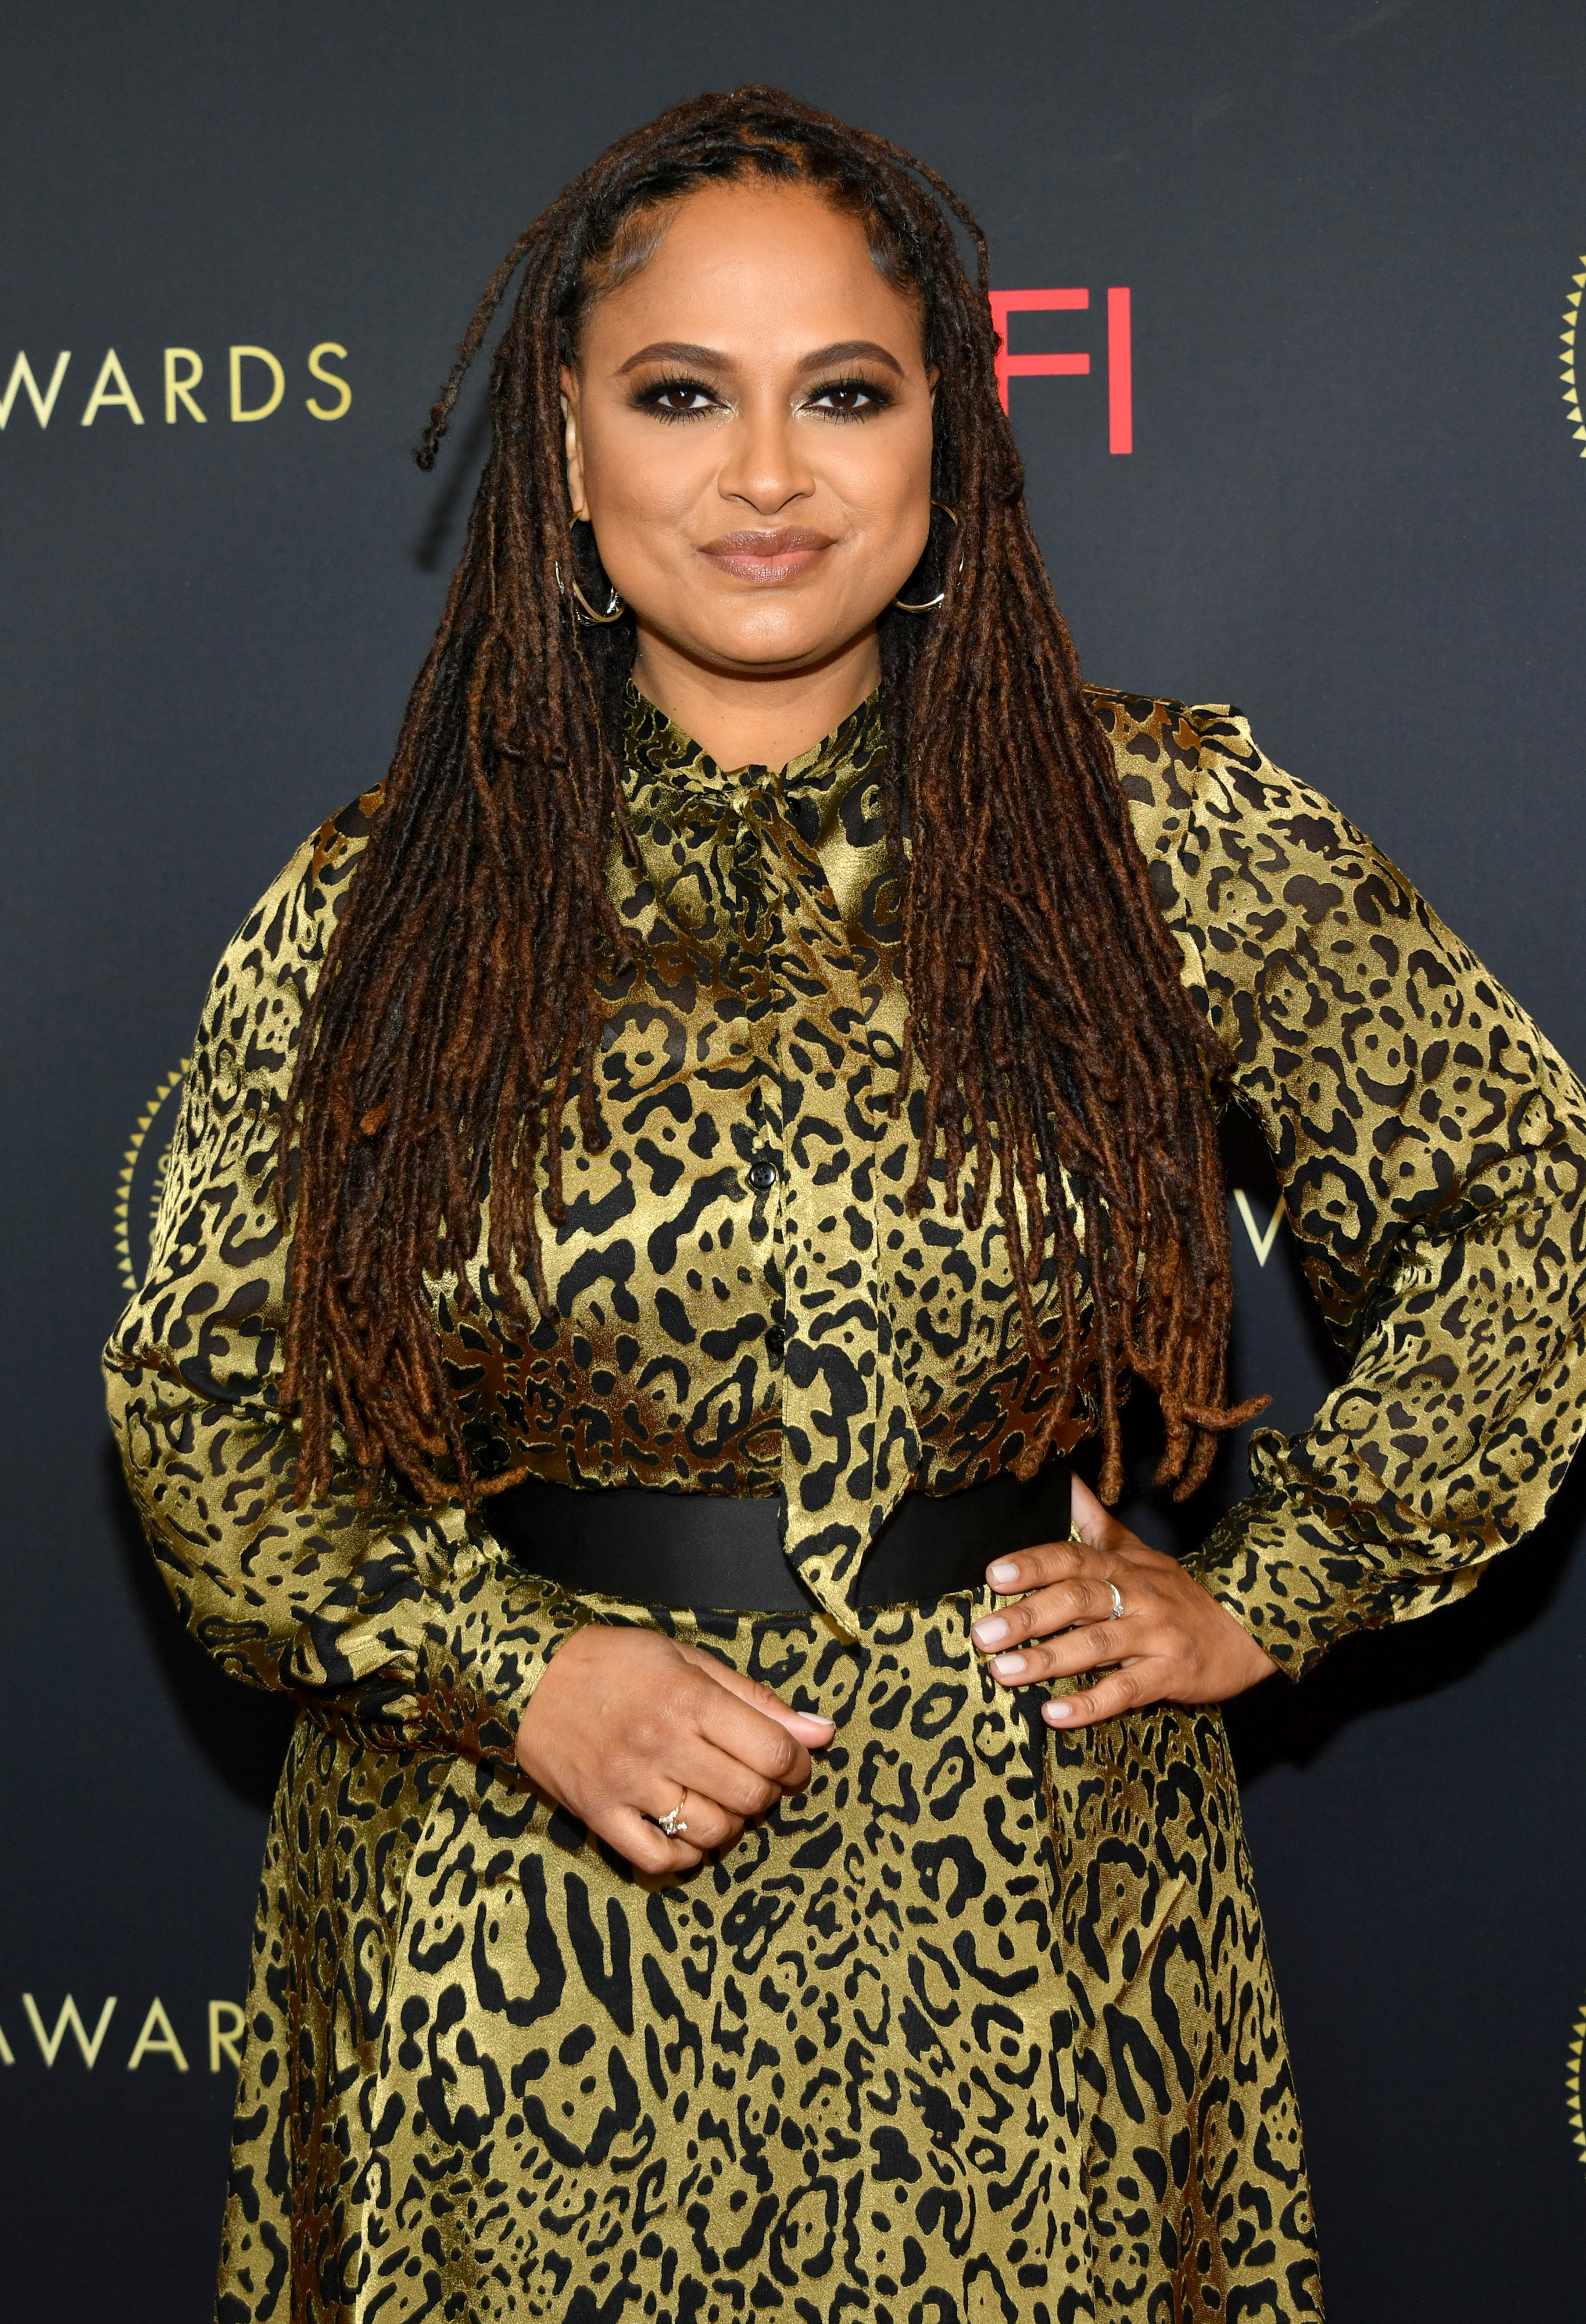 """Director Ava DuVernay told Kelly she should be """"ashamed"""" of her remarks on Kaepernick and racism. (Photo: Amy Sussman/Getty Images for AFI)"""